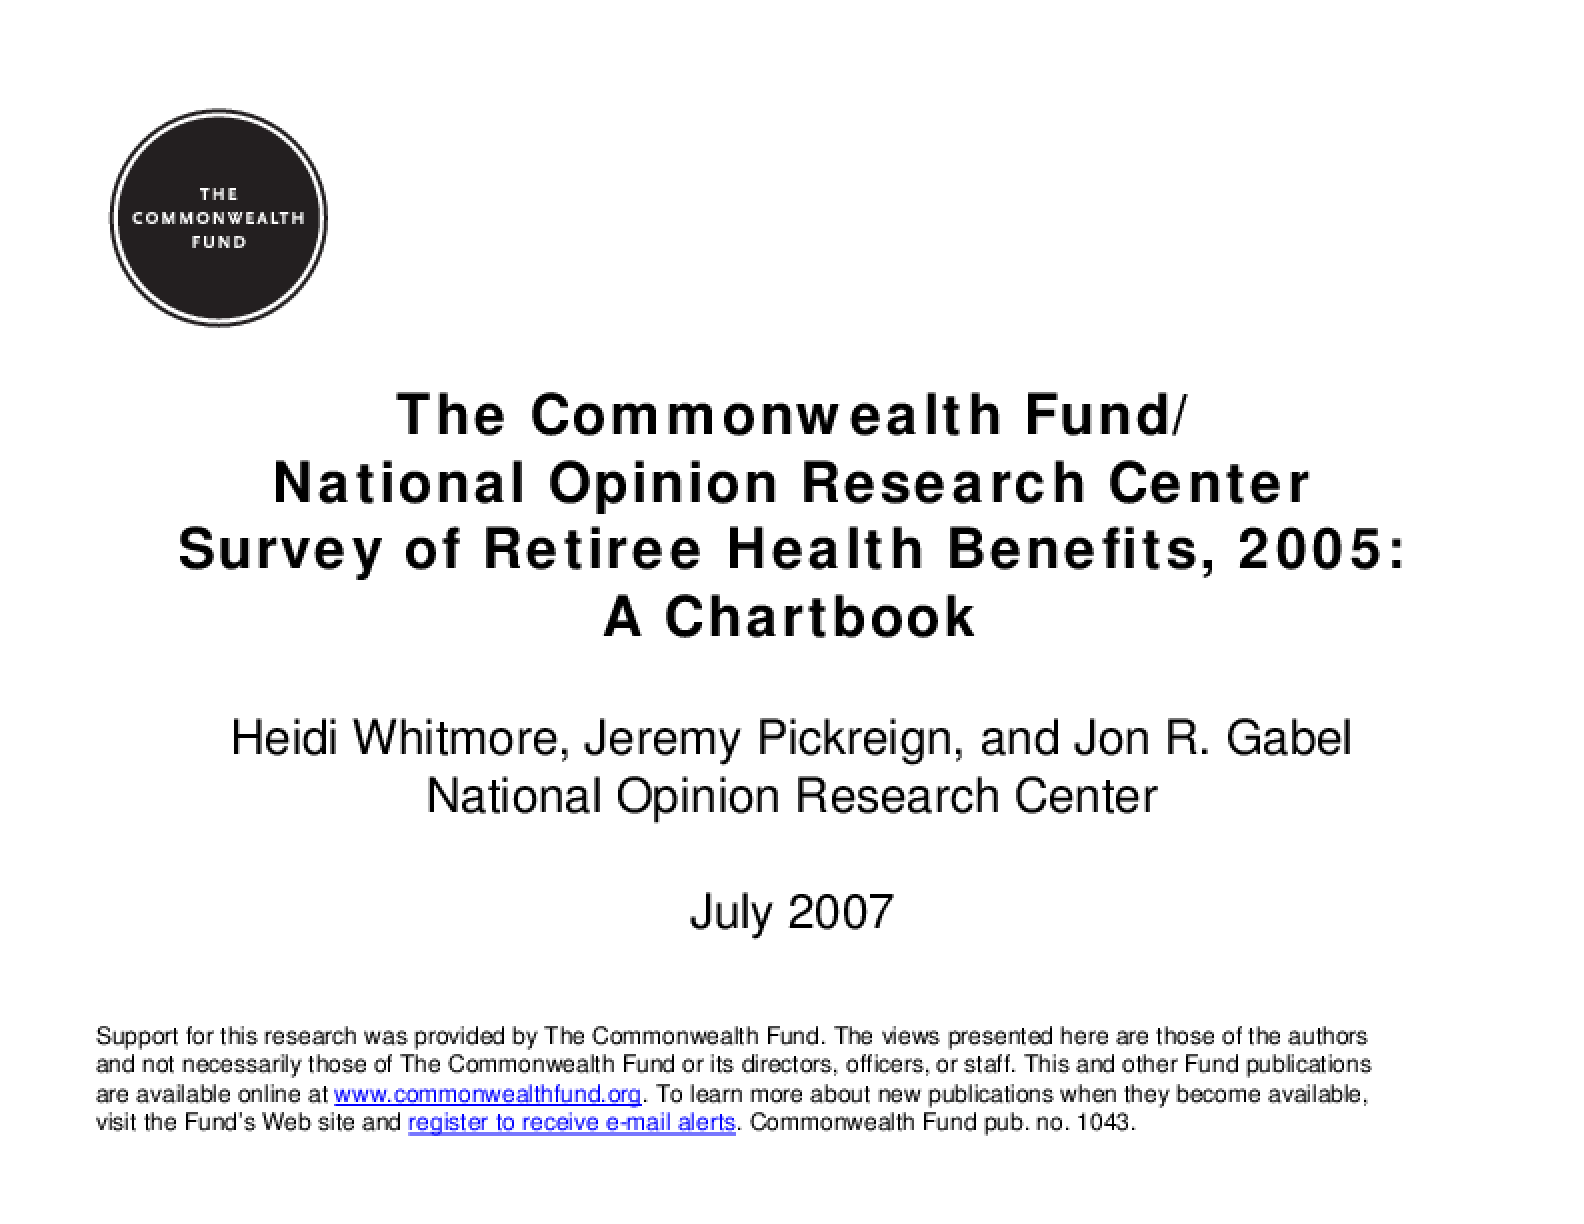 The Commonwealth Fund/National Opinion Research Center Survey of Retiree Health Benefits, 2005: A Chartbook